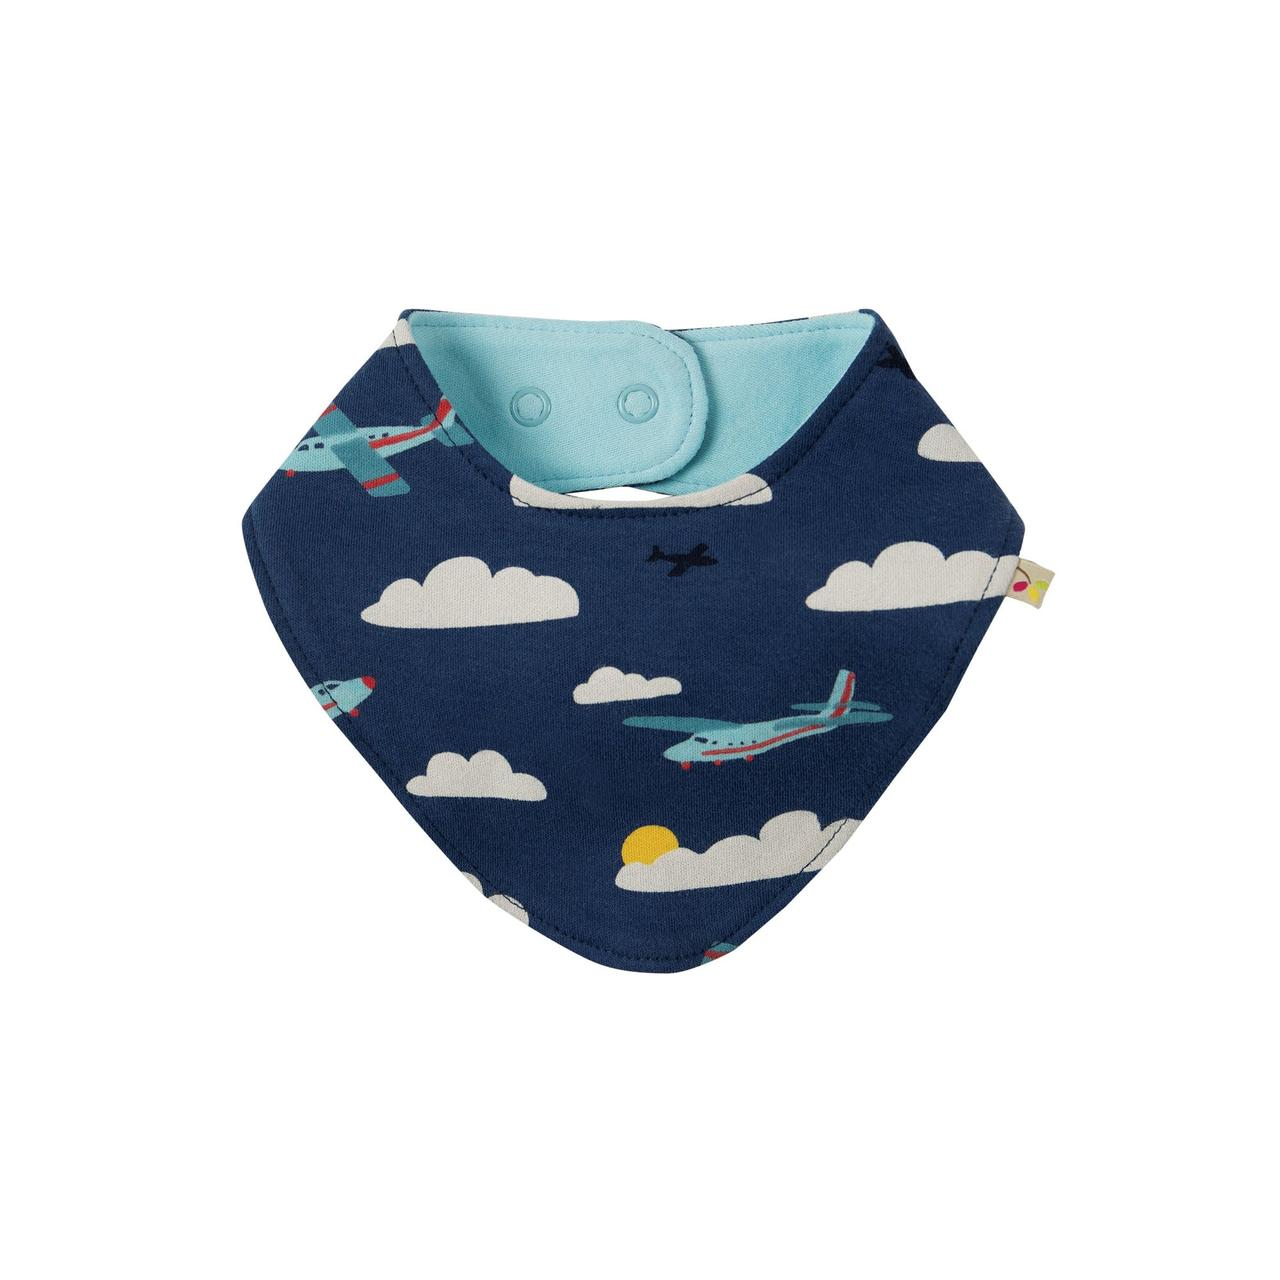 Нагрудник двусторонний Frugi  Marine Blue Fly Away, синий